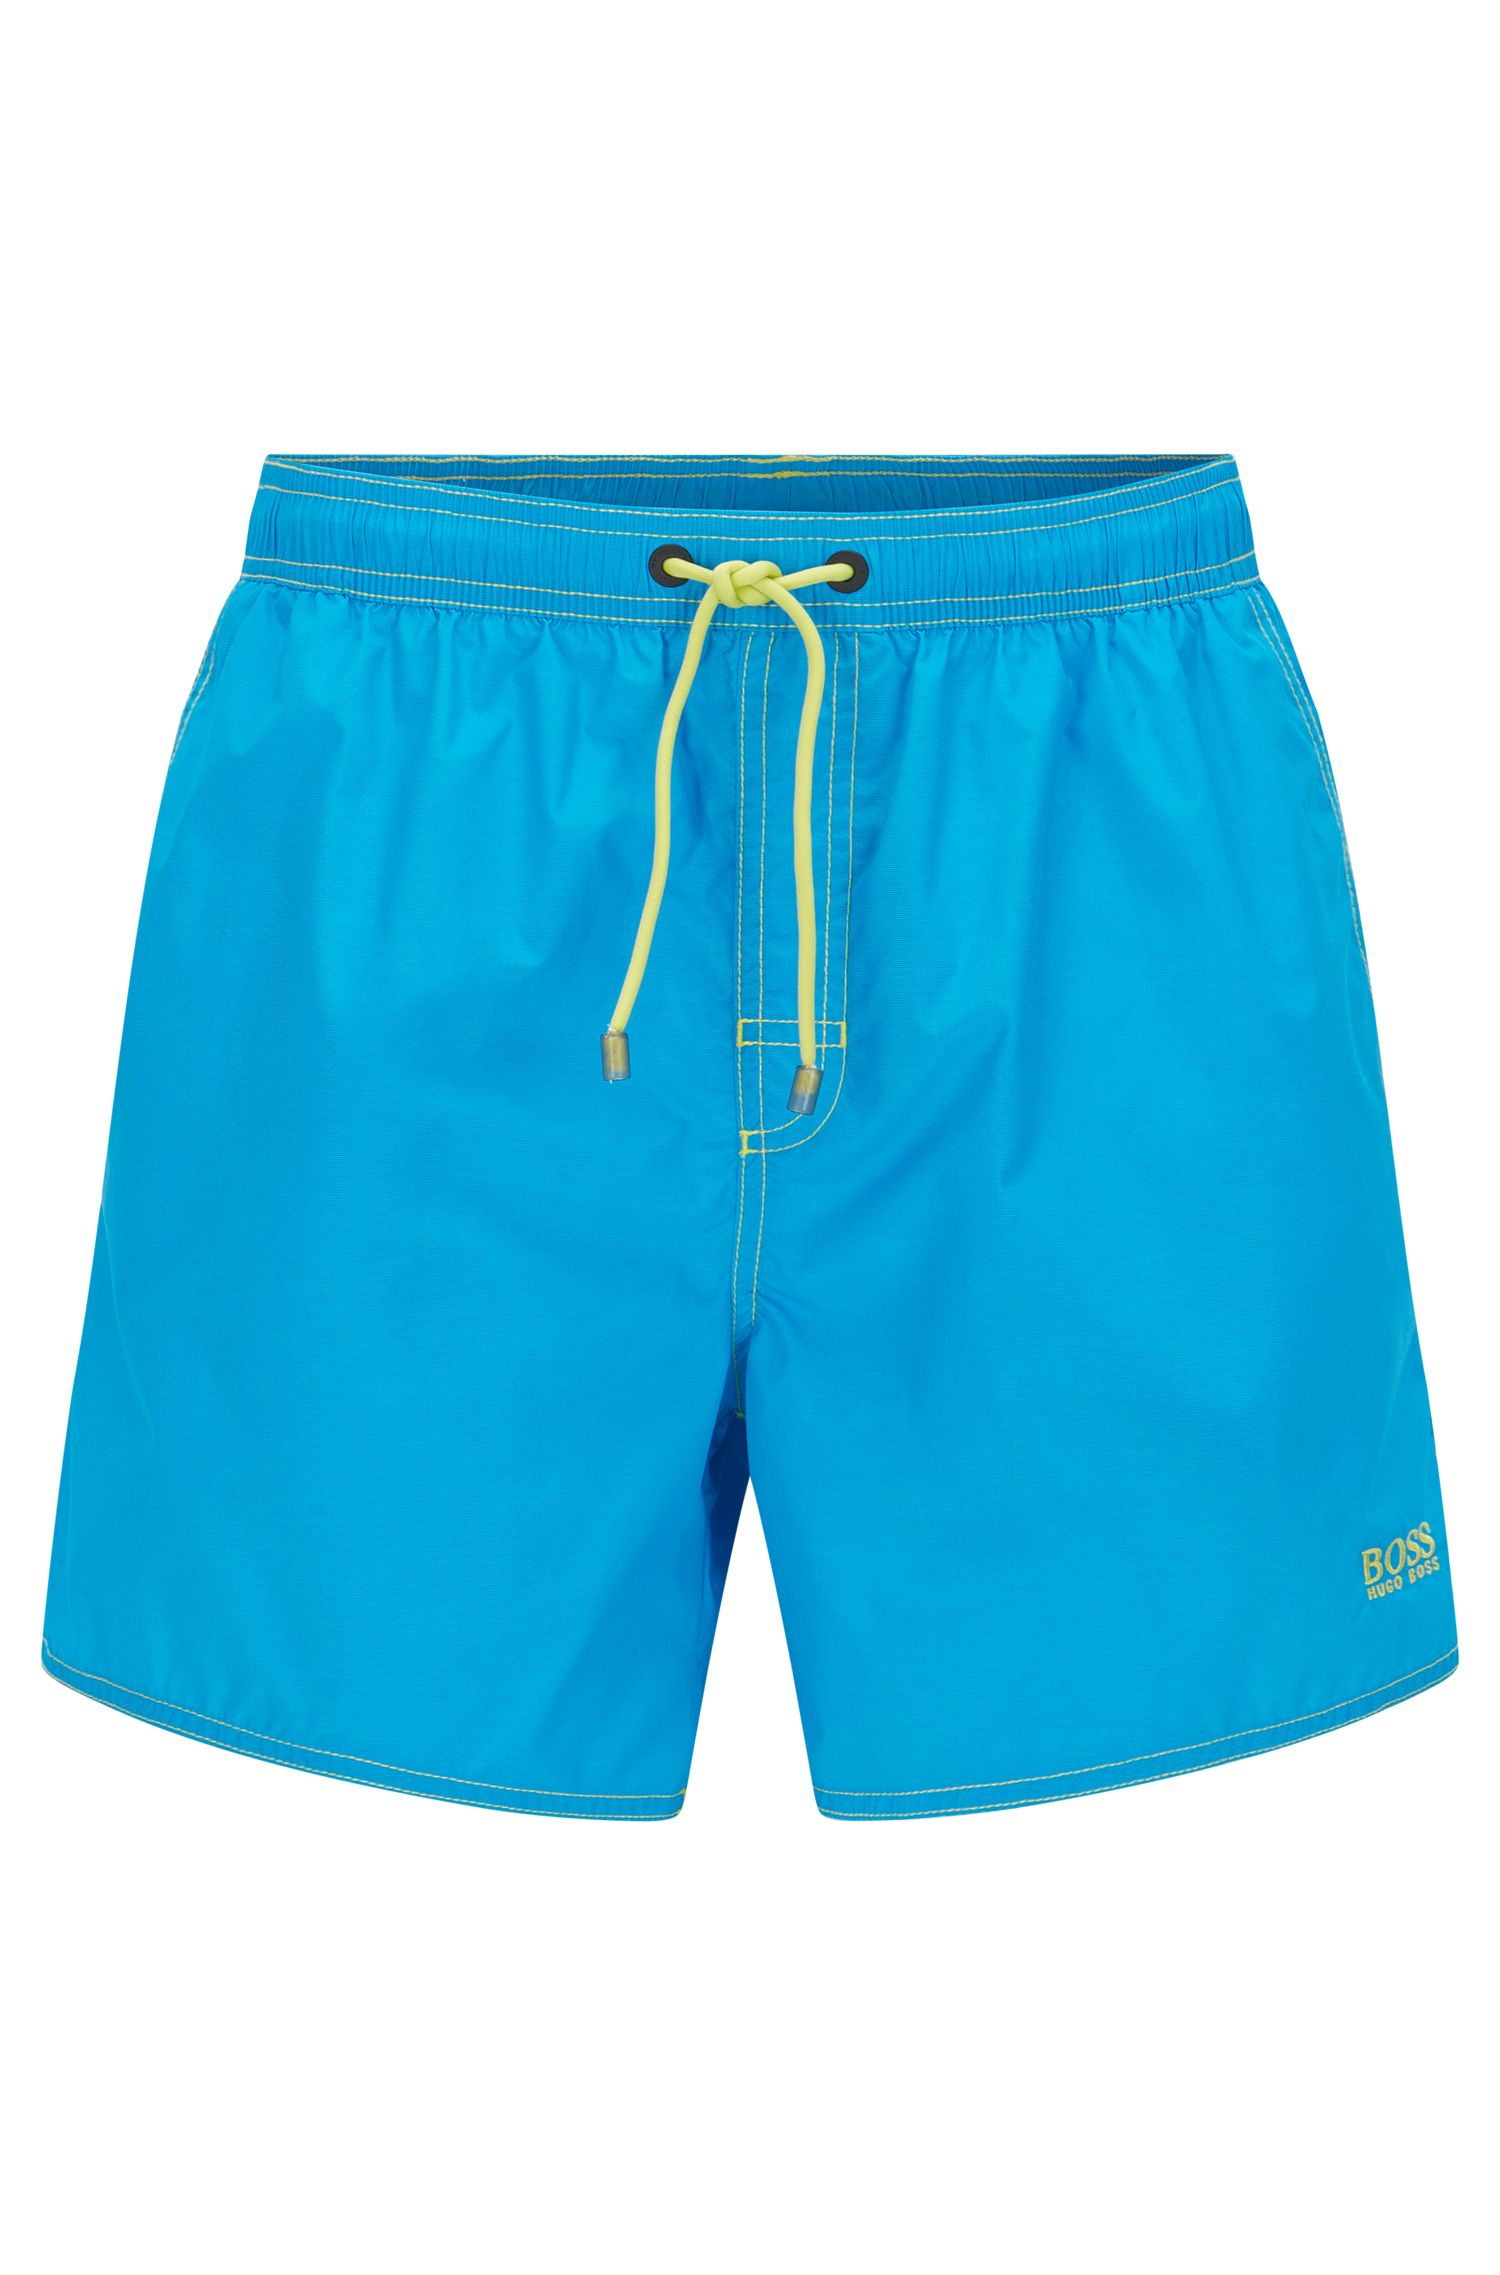 Short-length swim shorts in technical fabric